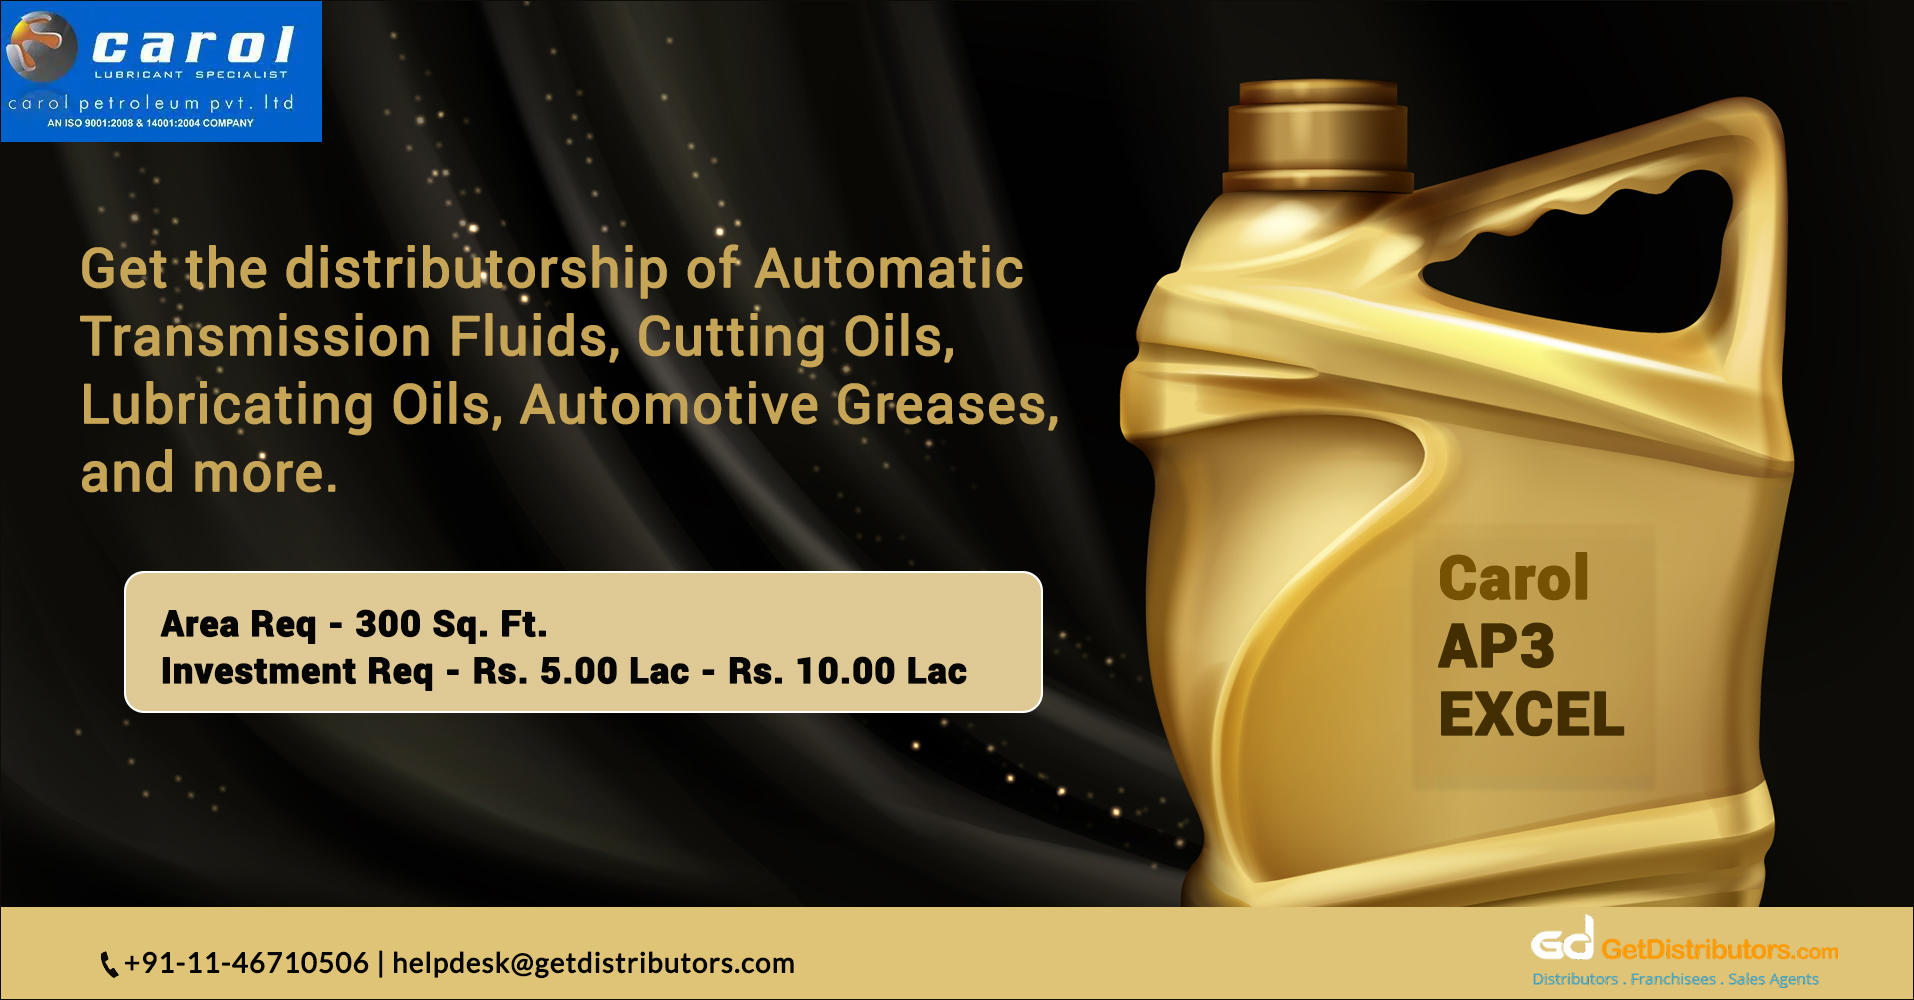 High-Quality And Cost-Effective Oil & Lubricants: Get Distributorship